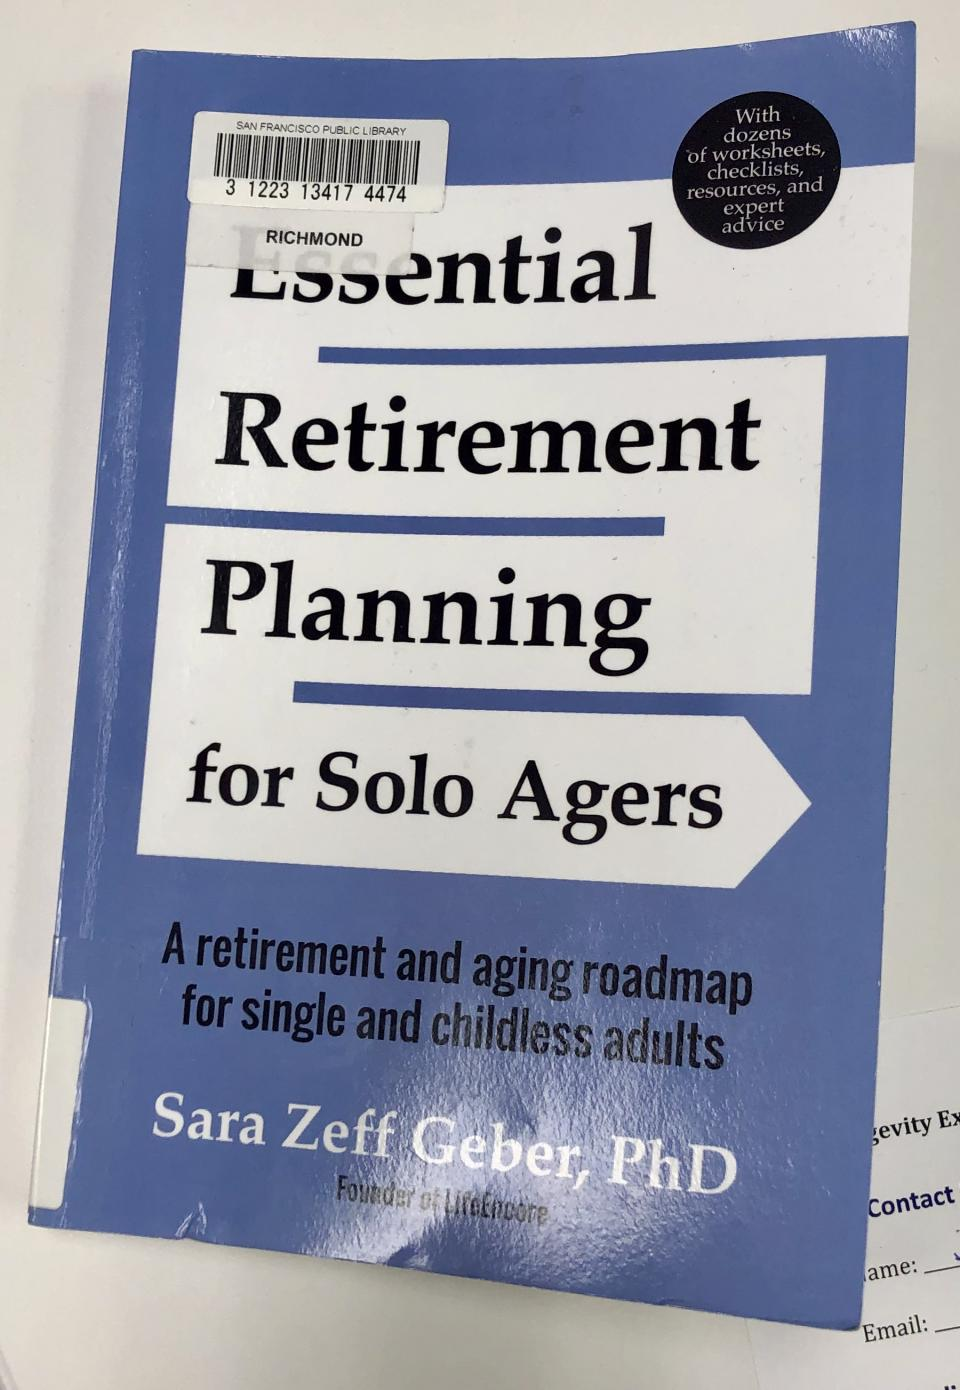 Retirement Planning for Solo Agers: Book Recommendation